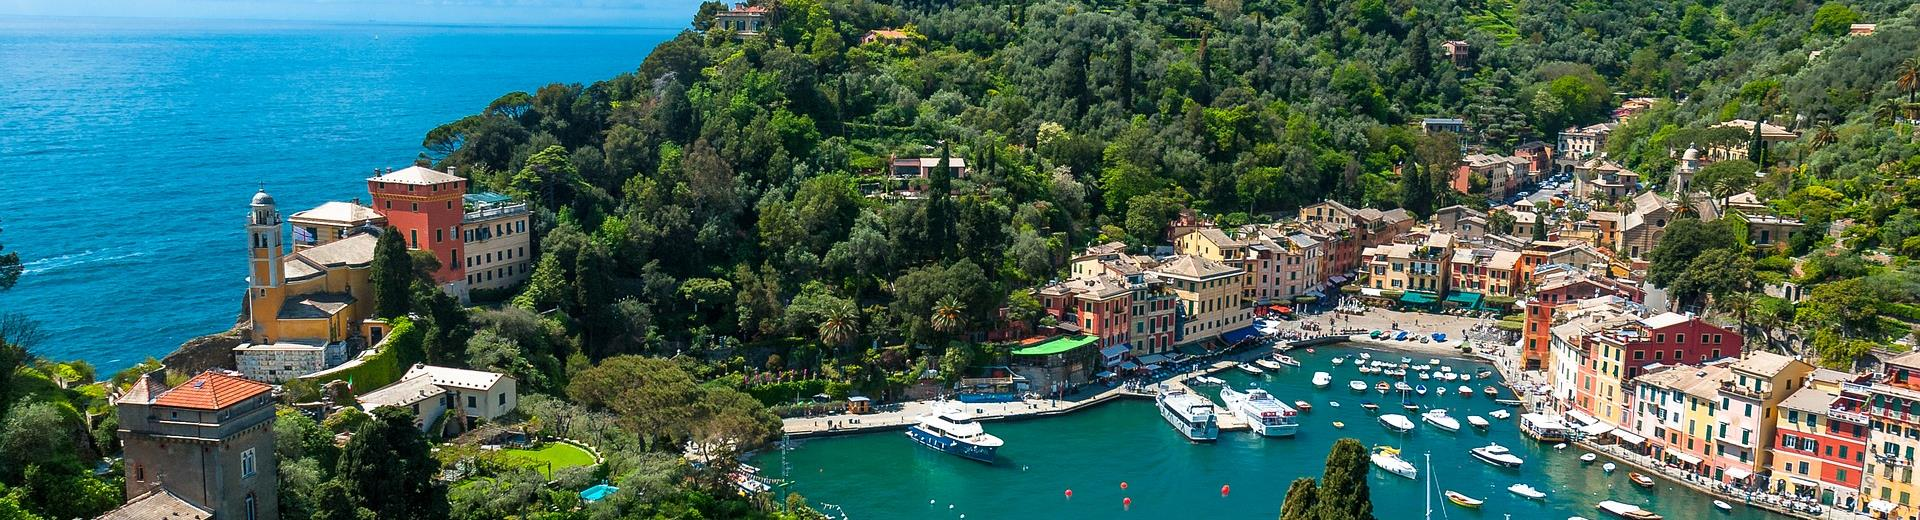 Portofino-Genoa and Surroundings Hotel Metropolis